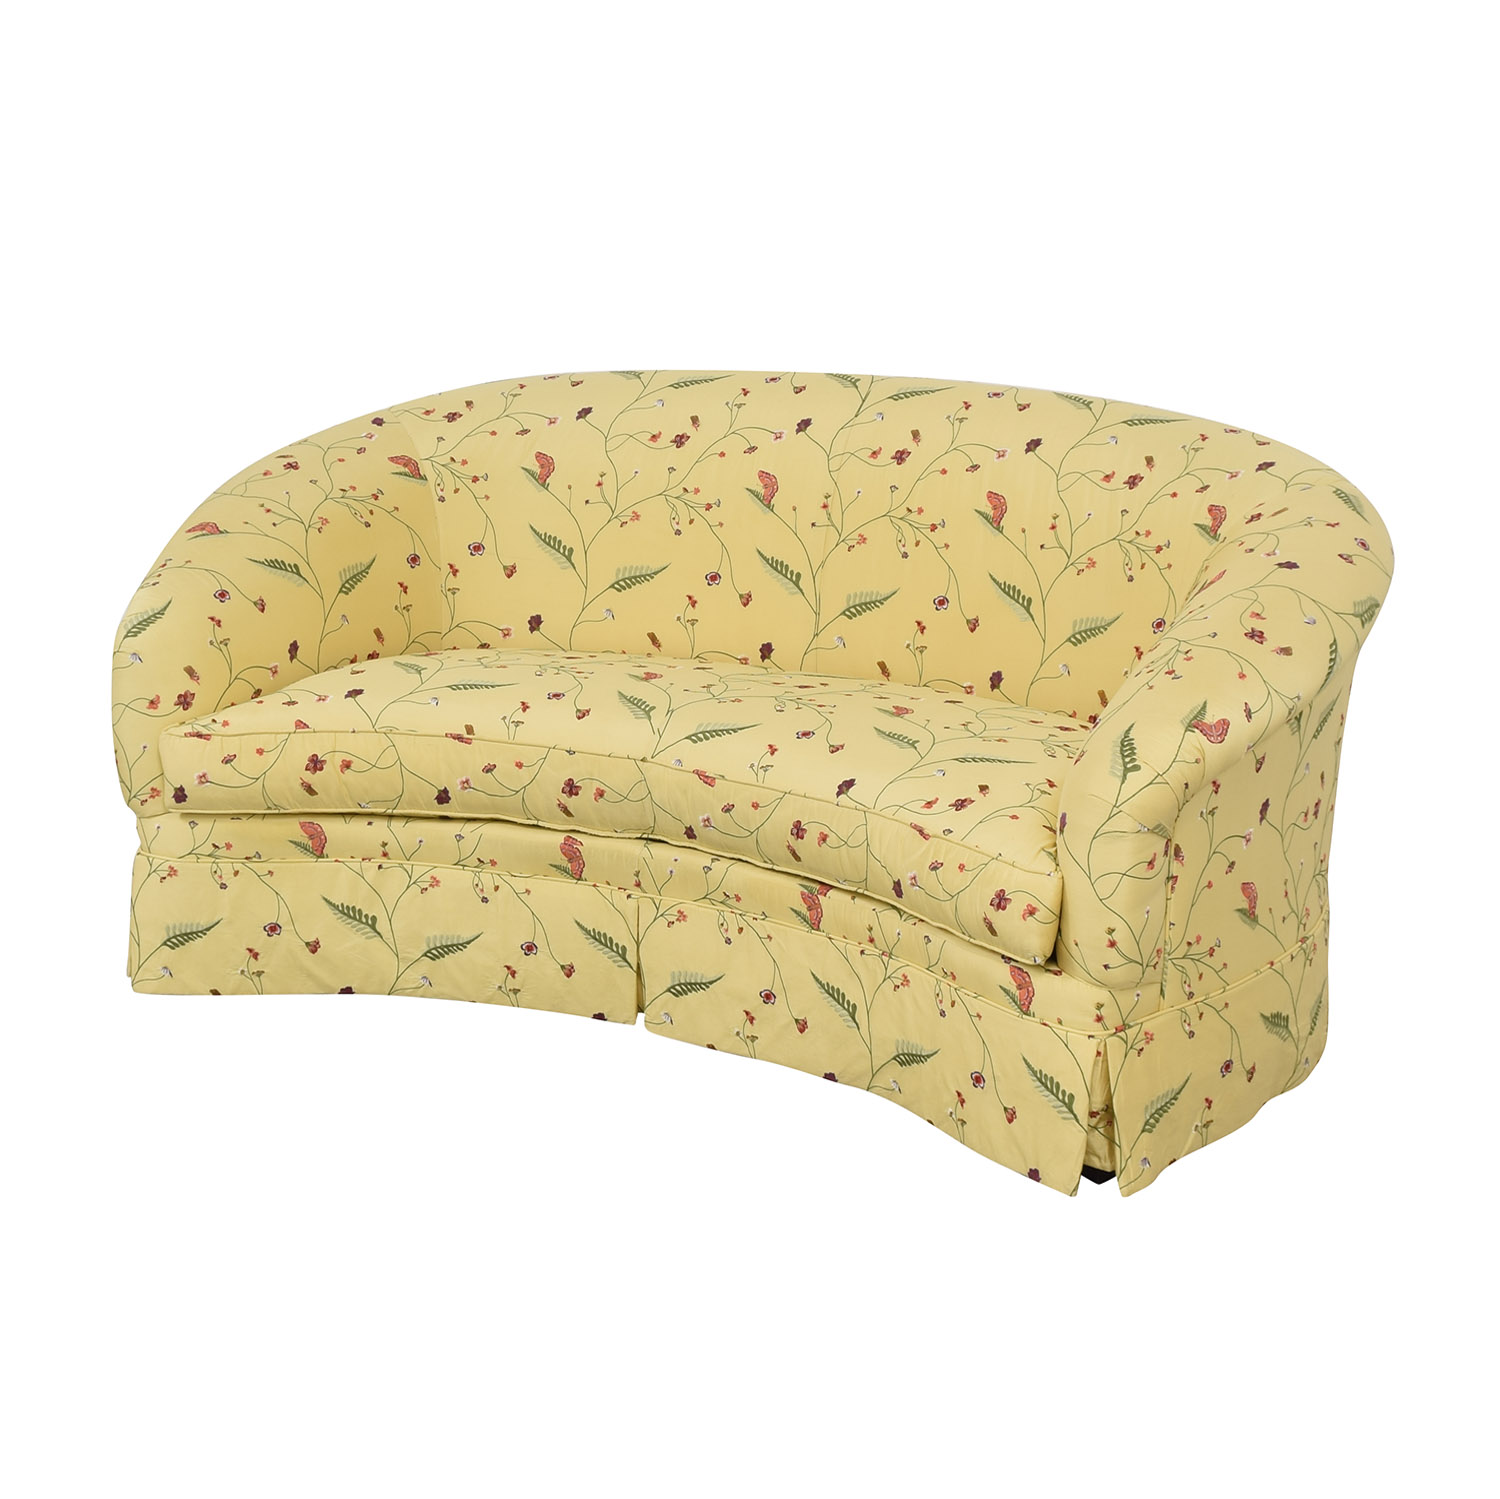 Drexel Heritage Chinoiserie Curved Sofa / Sofas